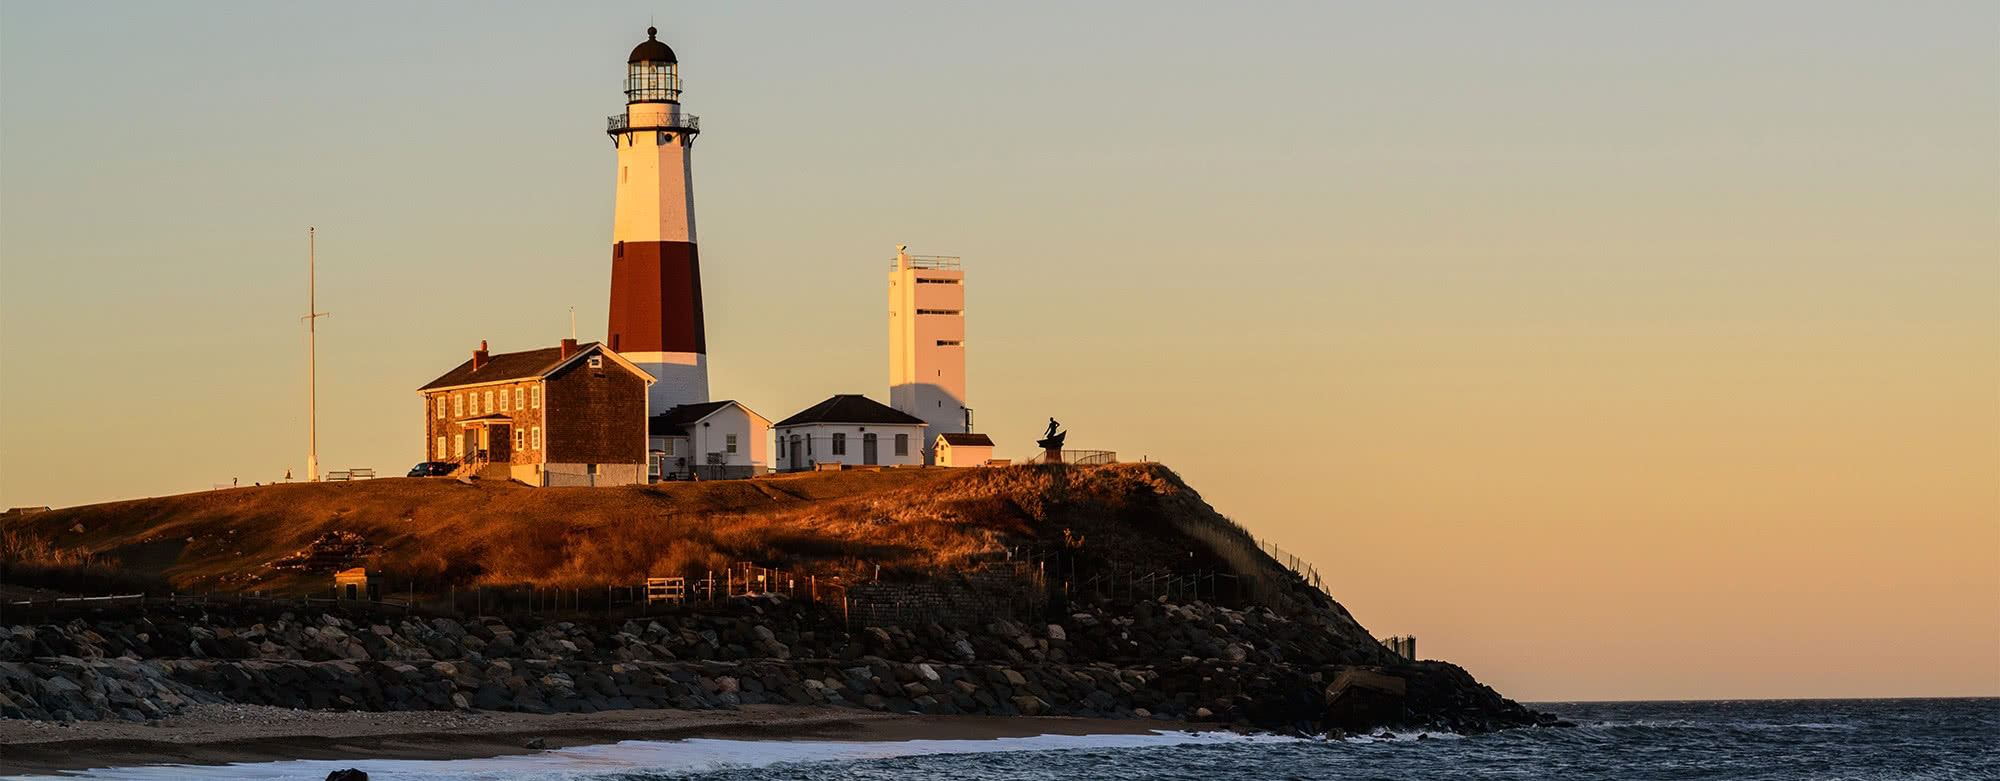 Montauk-Lighthouse